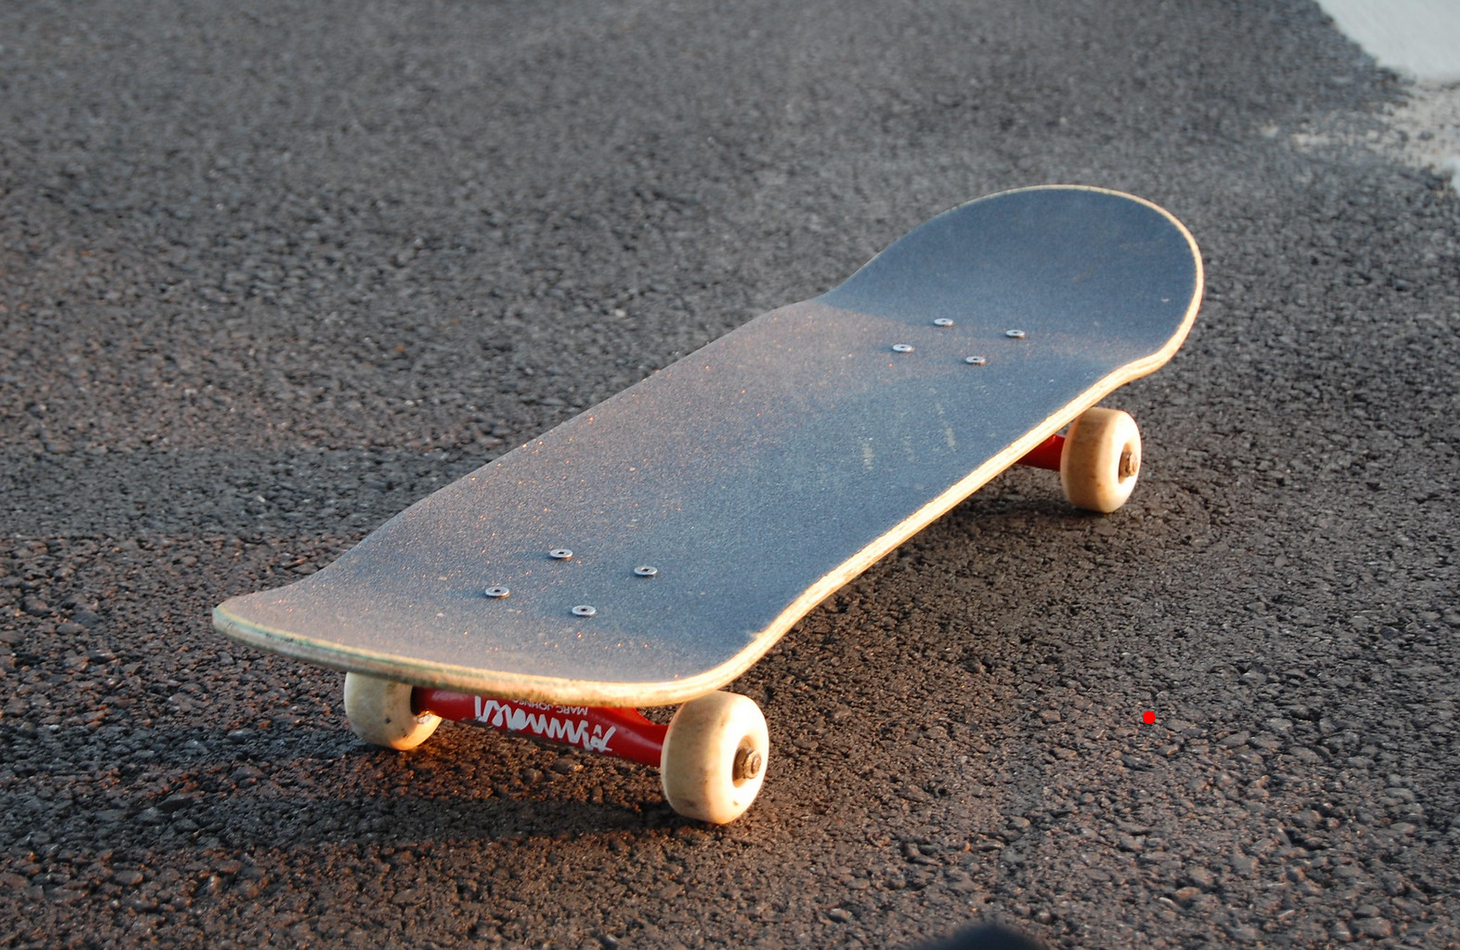 Best complete skateboards